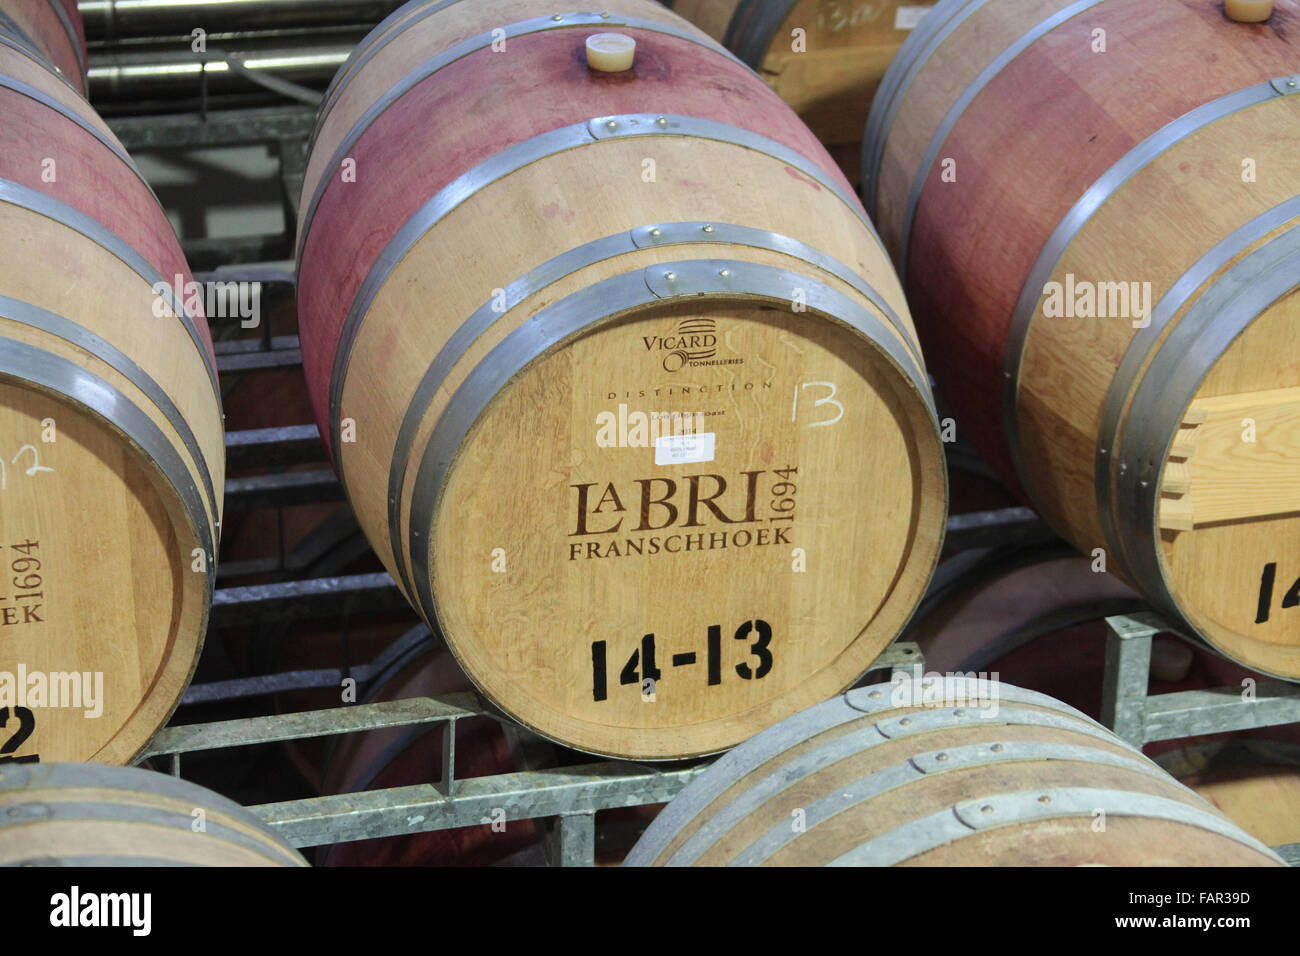 Wine barrels at La Bri estate at Franschhoek in the Western Cape of South Africa Stock Photo